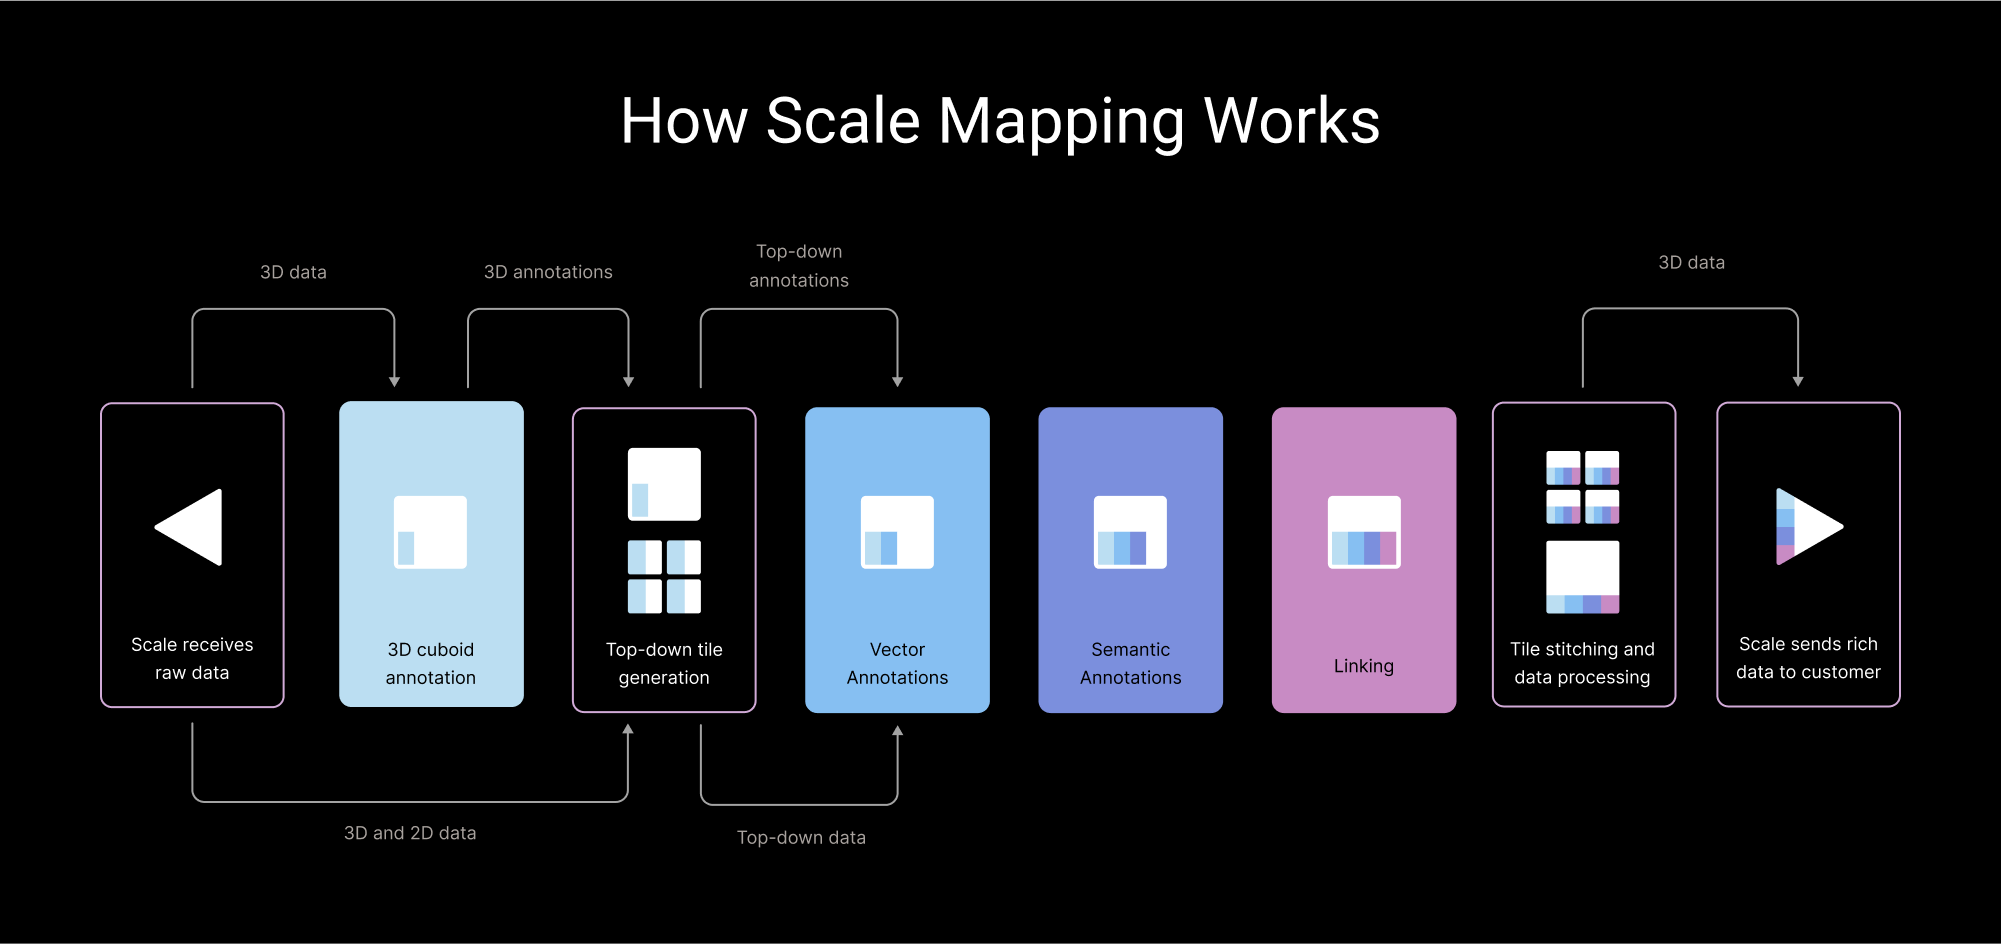 How Scale Mapping Works Diagram